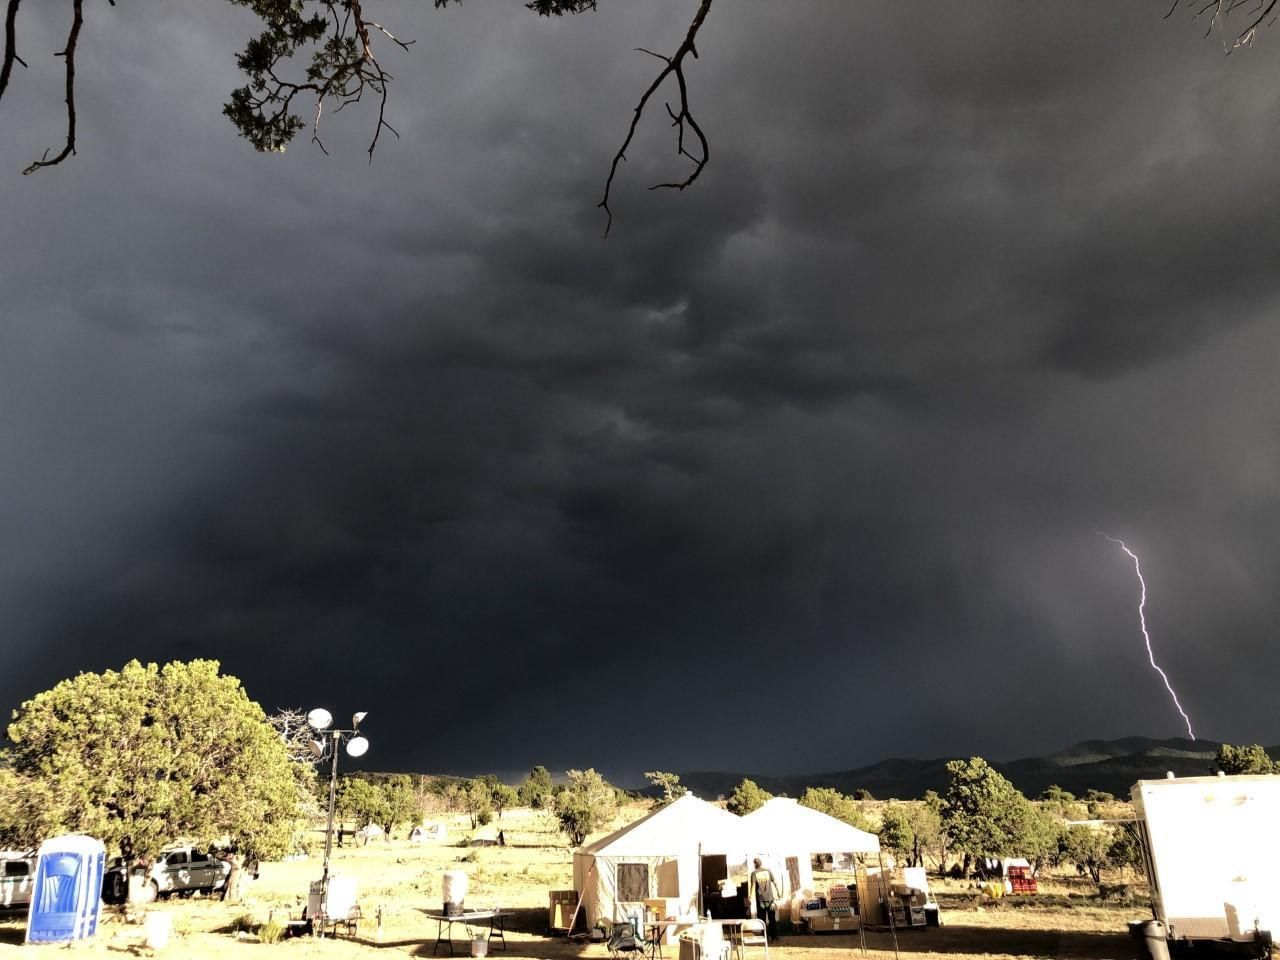 Nighttime photo of fire camp with multiple tents, tables, and chairs. The sky is extremely dark with clouds, lit up by a long single lightning bolt aiming towards the mountains in the background.